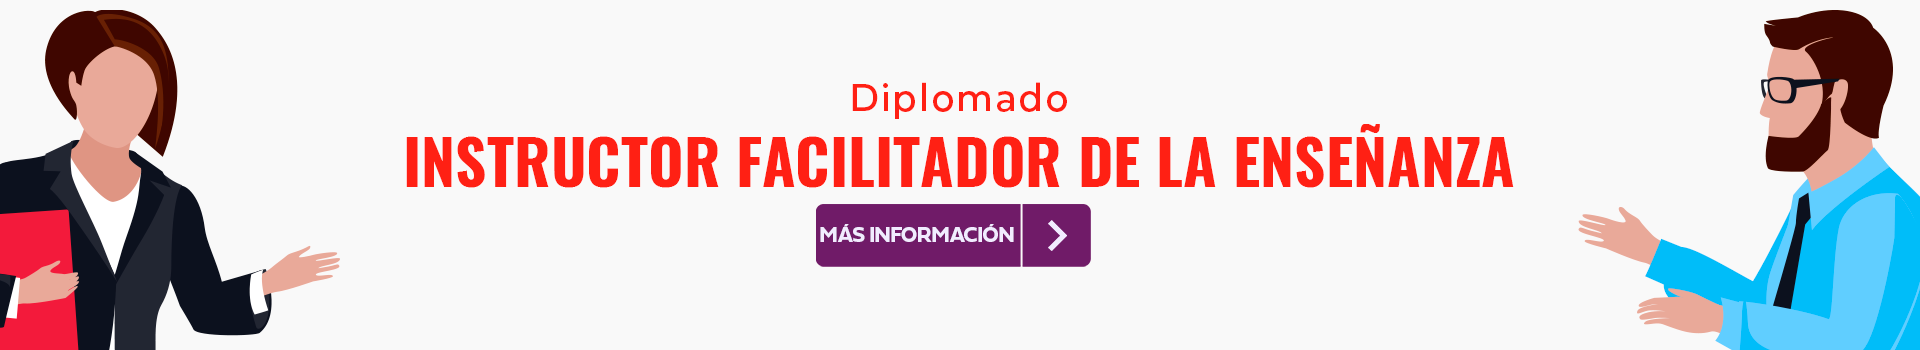 diplomado-instructor